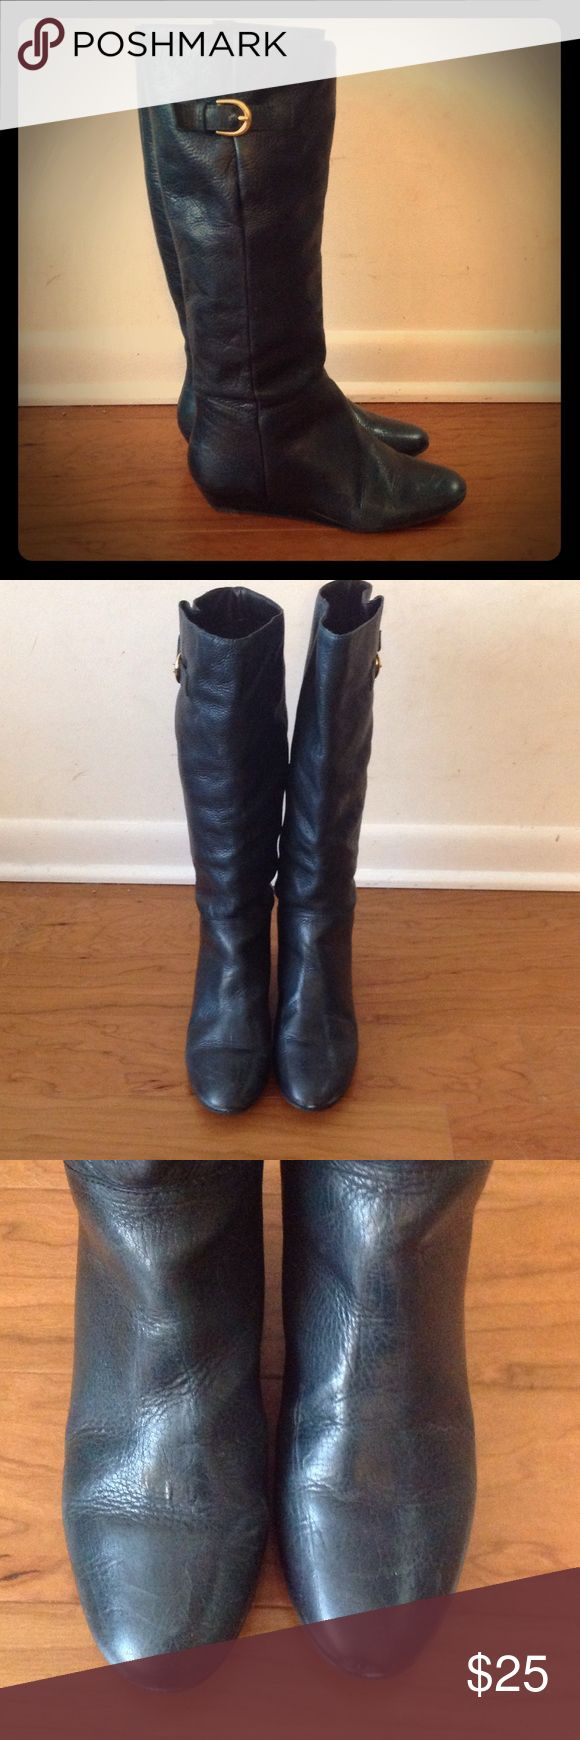 Steve Madden Intyce Boot in Forest Green Dark green knee high boot with a small wedge heel by Steve Madden. Model is Intyce. Some signs of wear but lots of life left in them. The soles are almost like new. Steve Madden Shoes